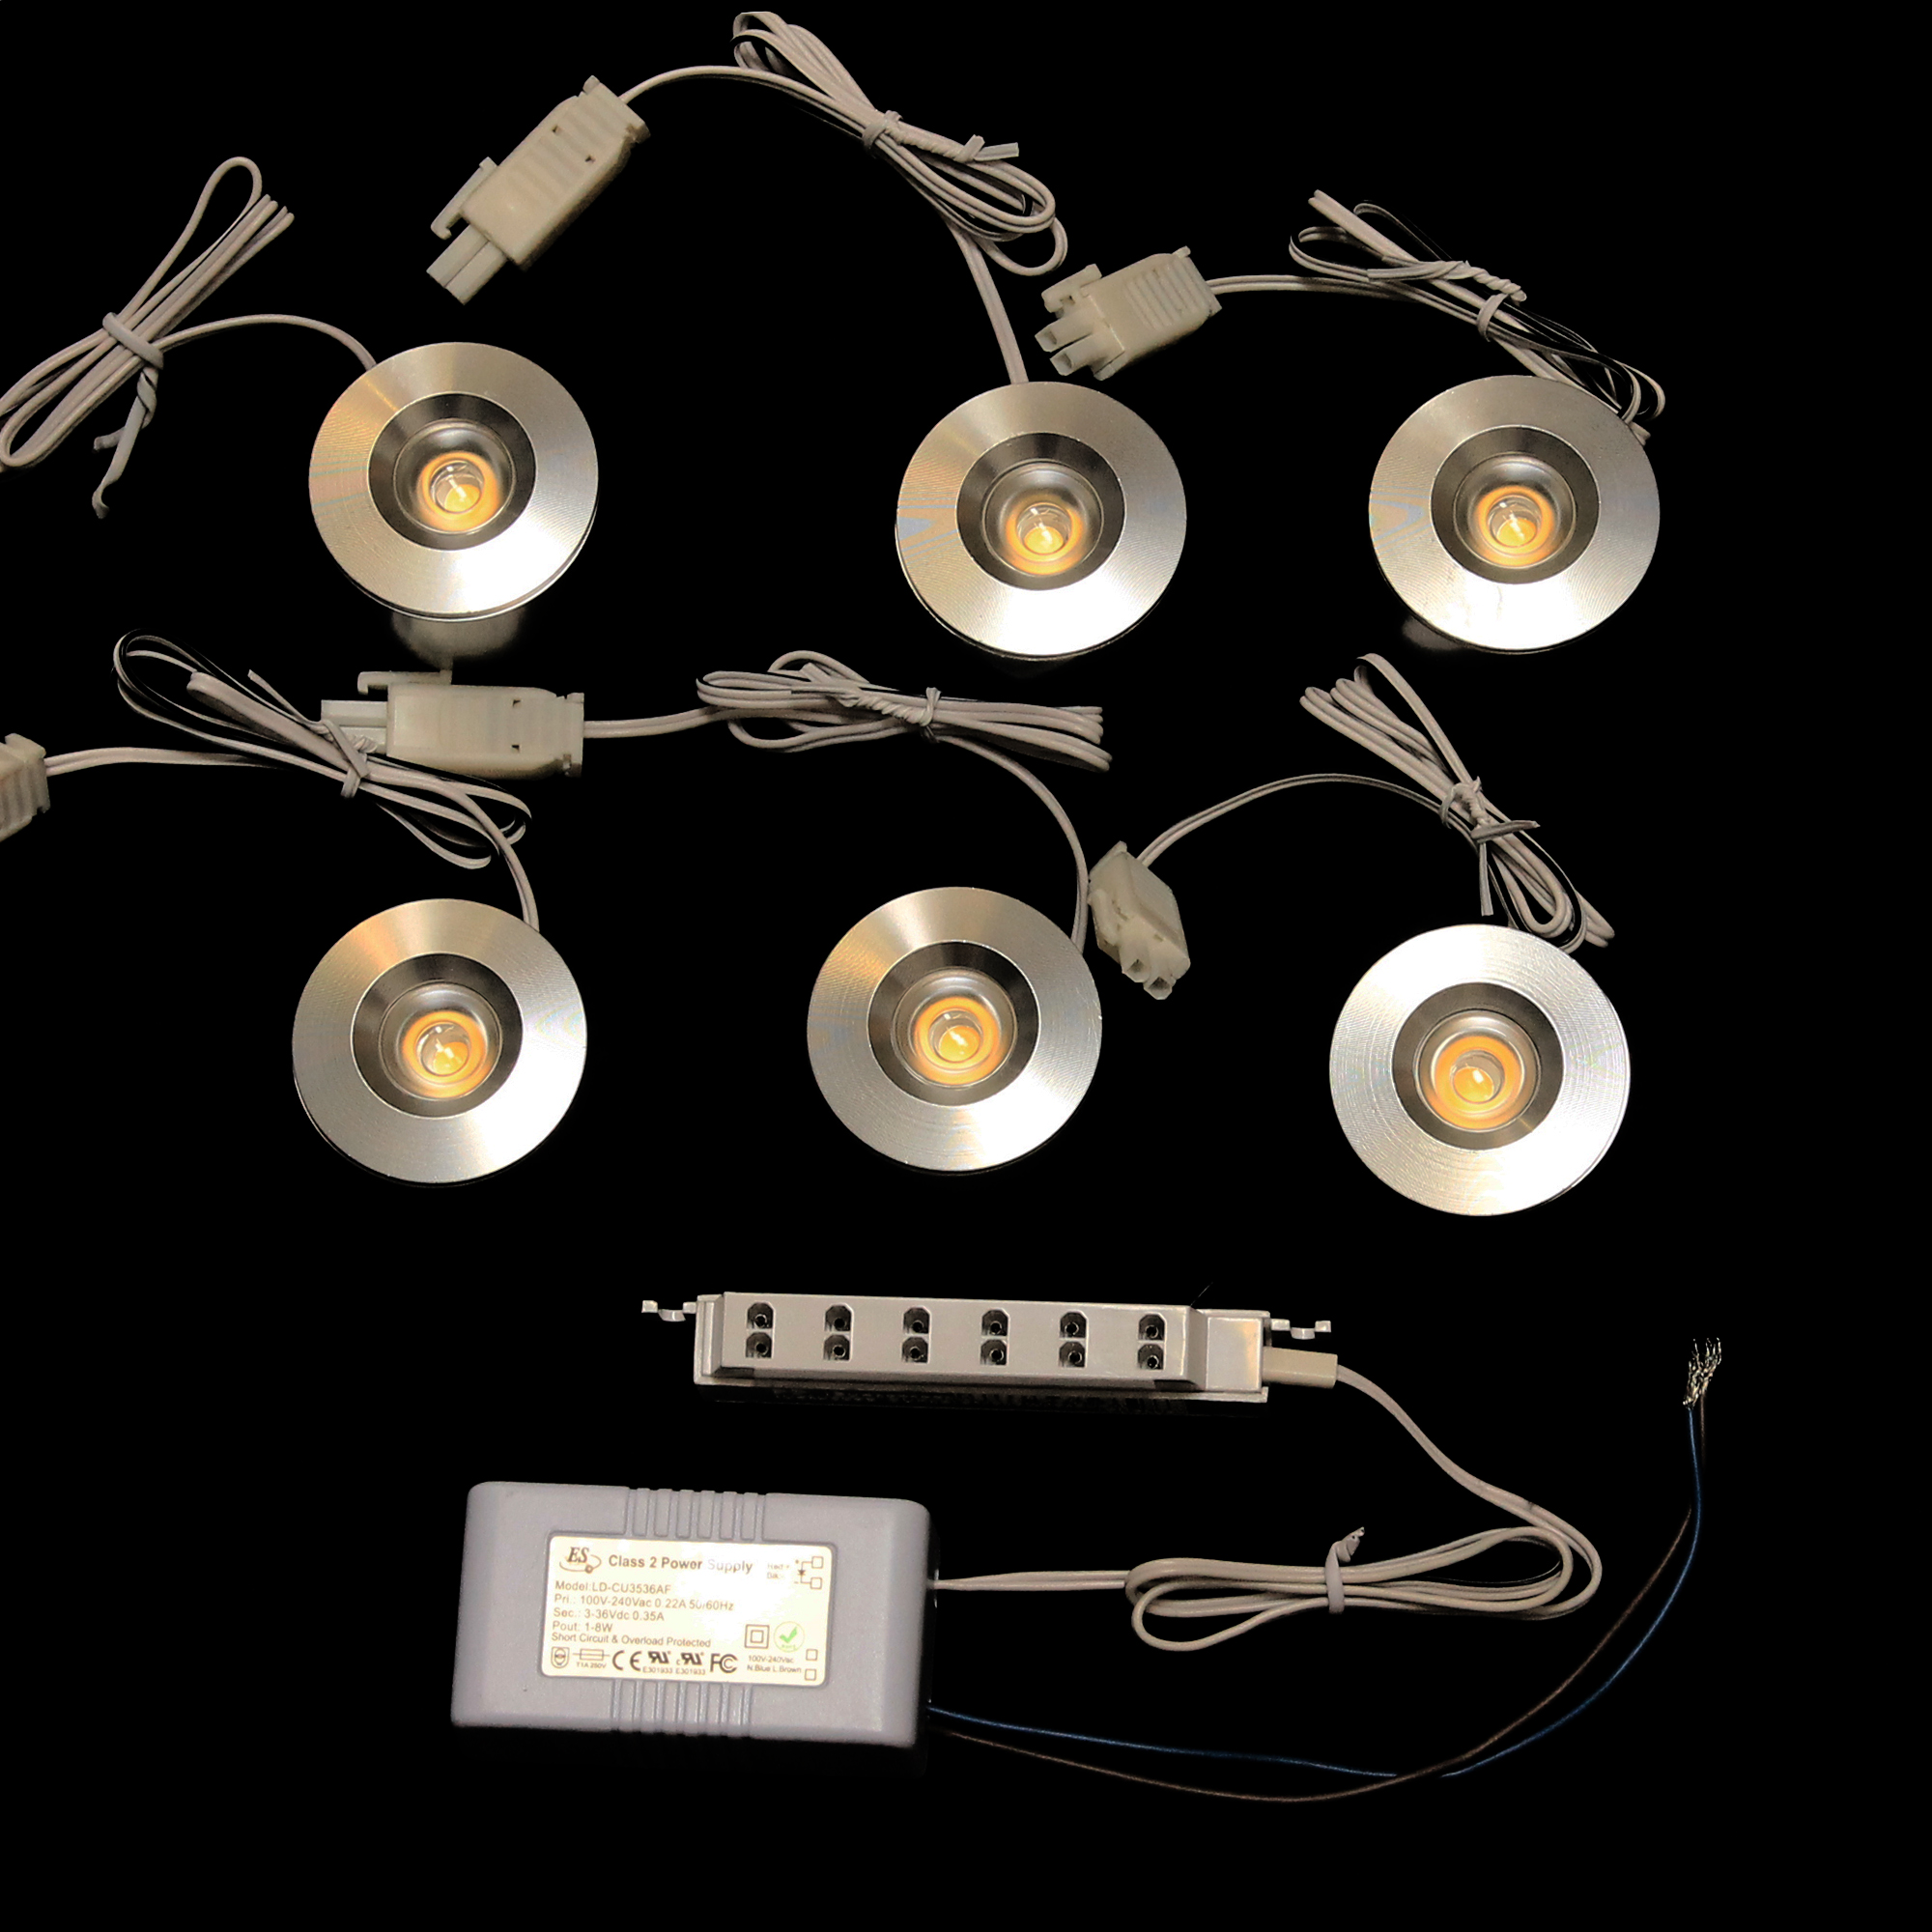 Getinlight Led Puck Lights Kit: EnvironmentalLights.com Offers 10% Discount On New LED